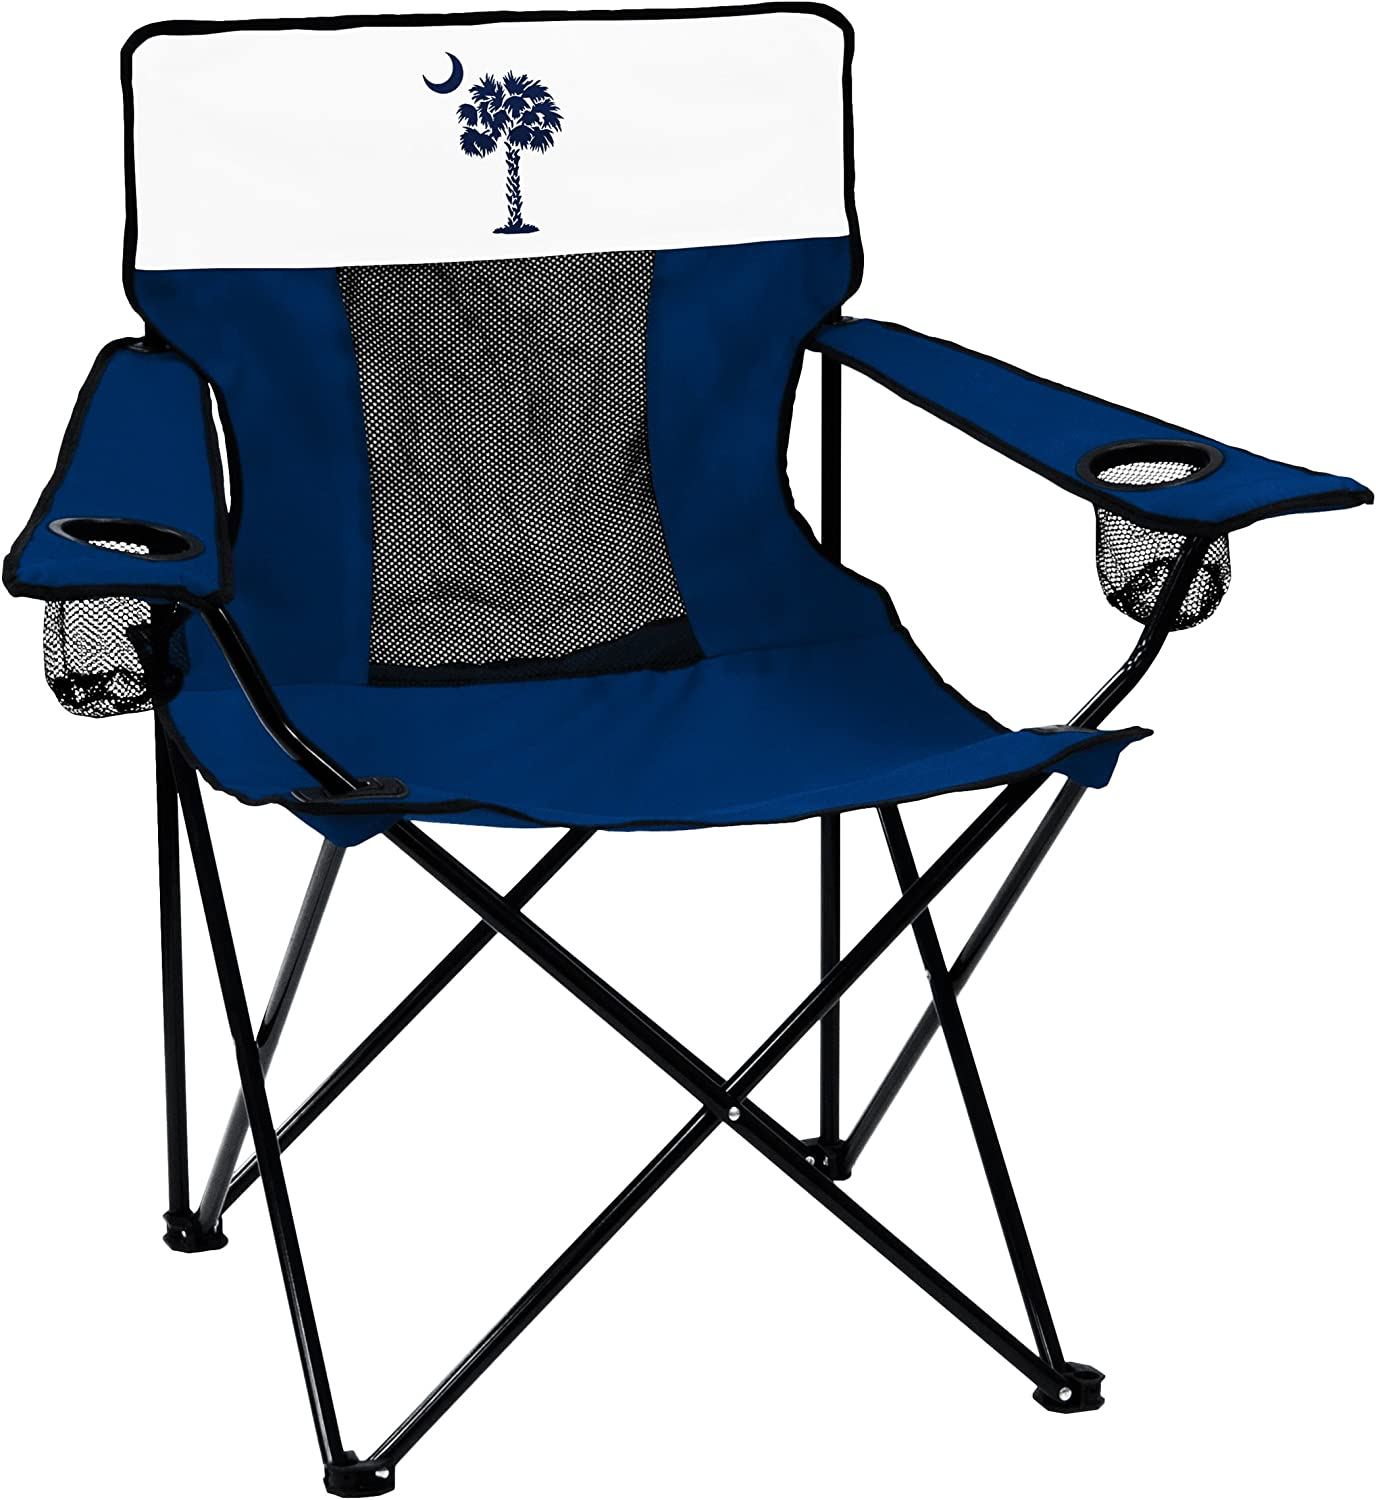 Collegiate Folding Elite Chair with Mesh Back and Carry Bag, Unisex, 402-12E, Navy